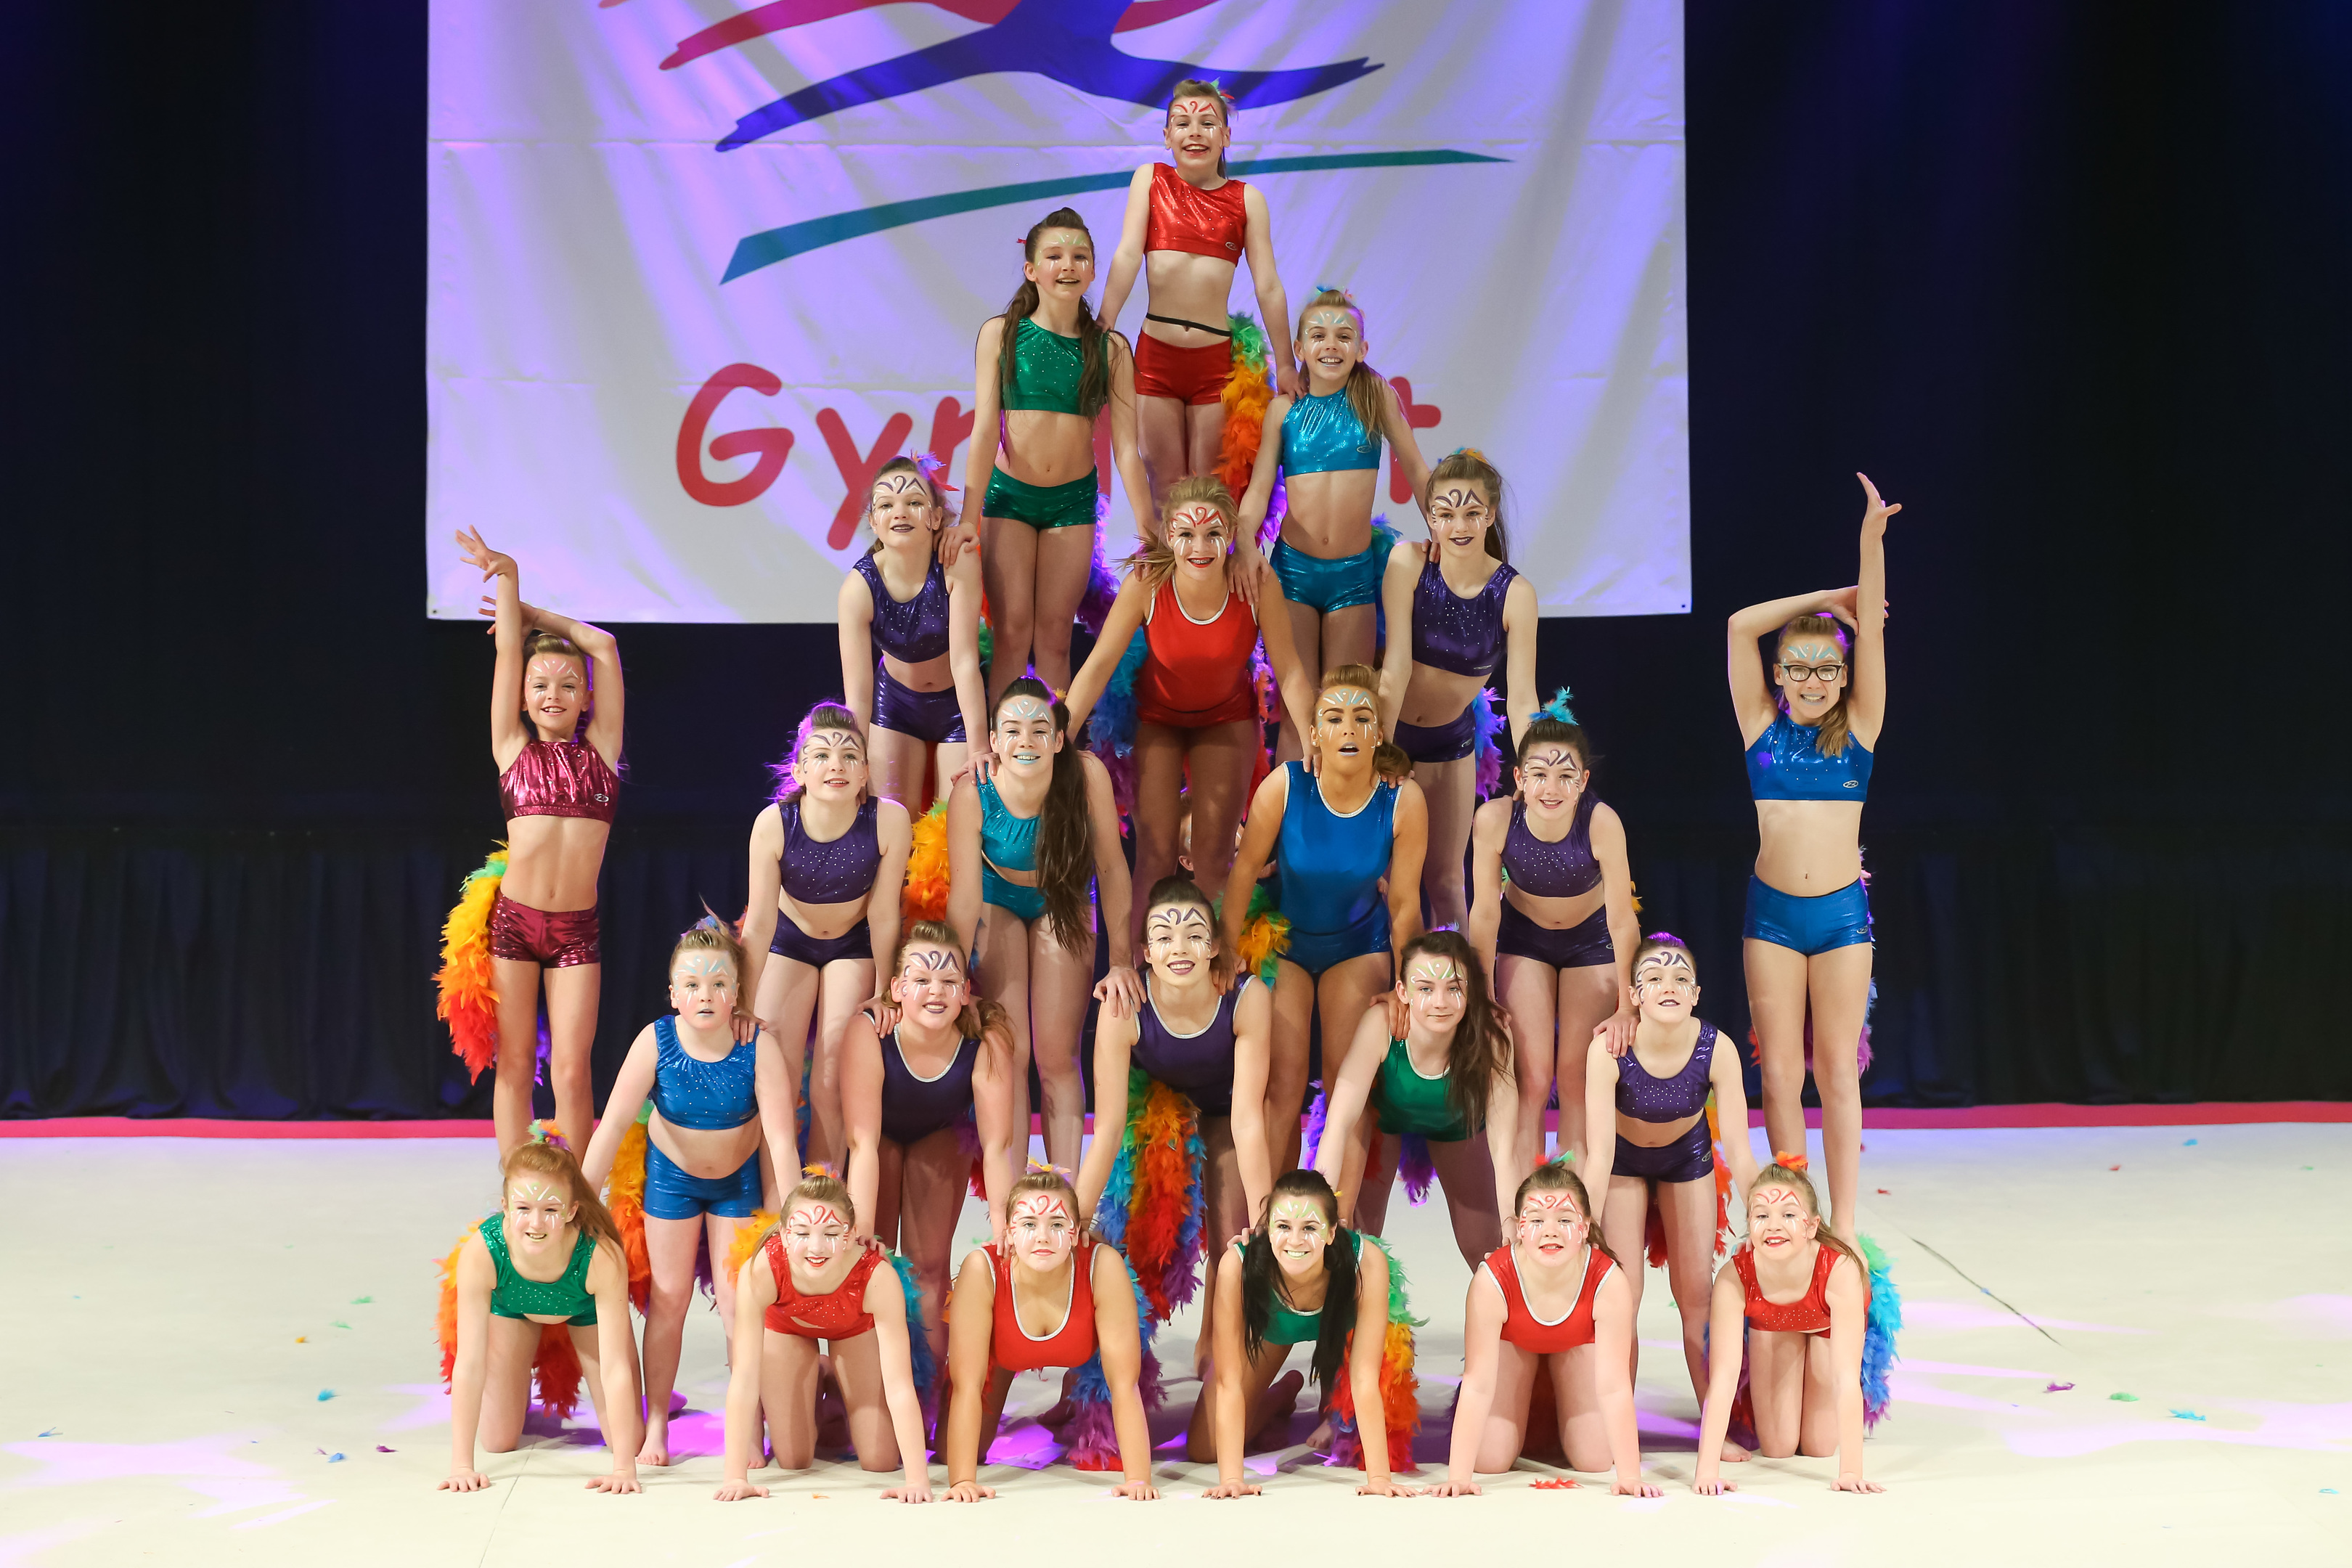 COLOURFUL:  The HPL group at Gymfest 2016.